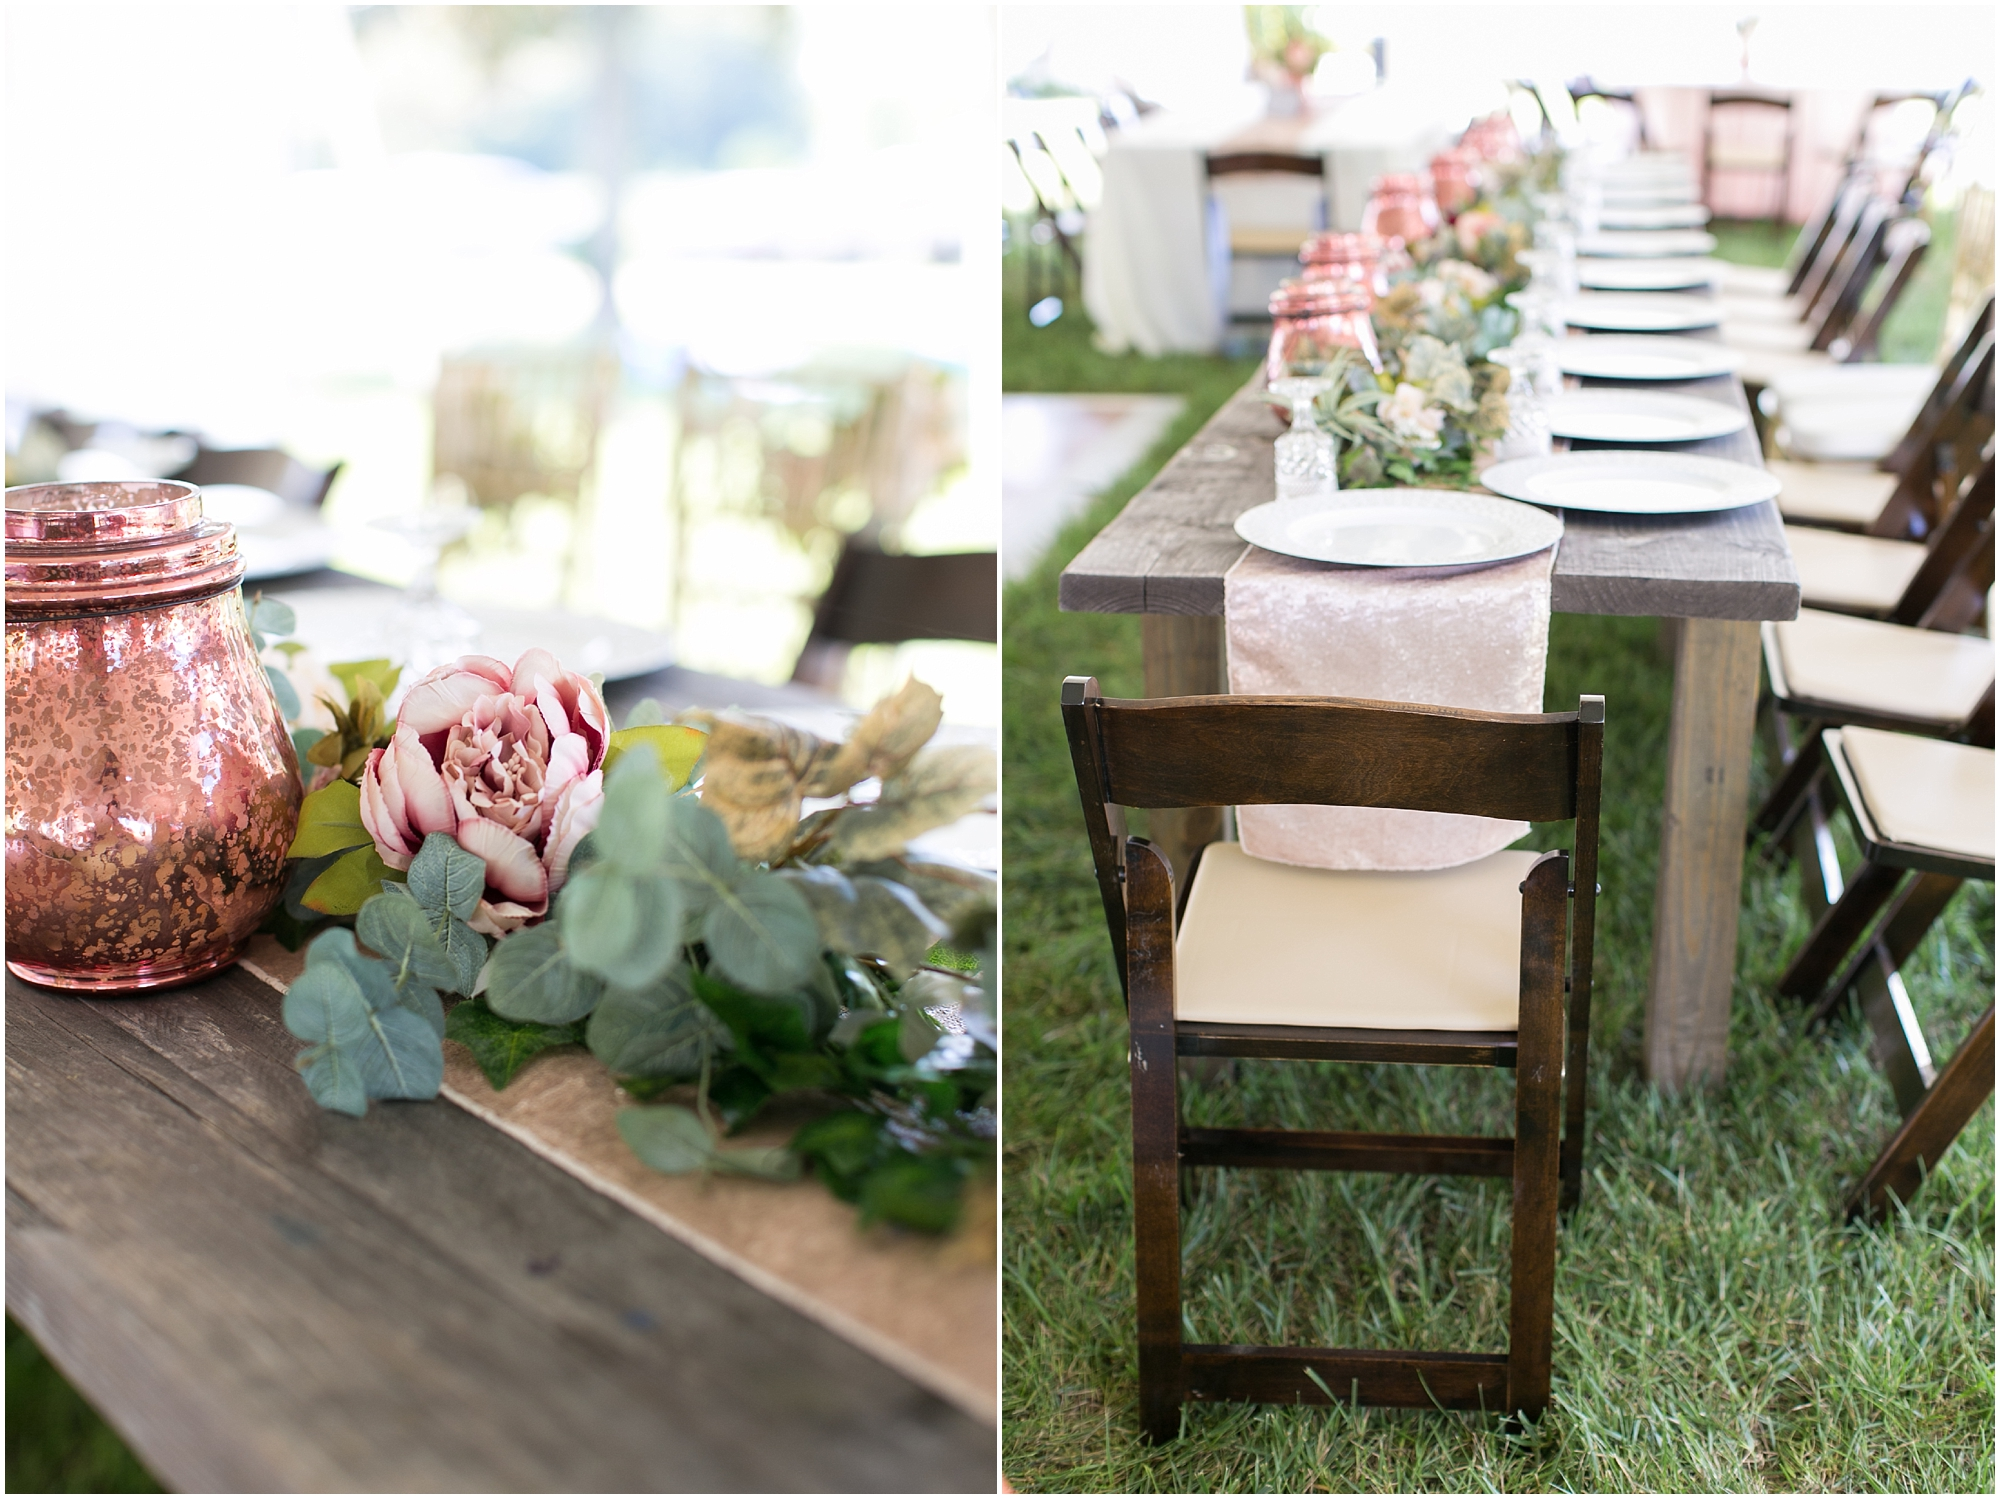 boho wedding at The Tar Roof virginia beach wedding photography boho bride and decorations jessica ryan photography